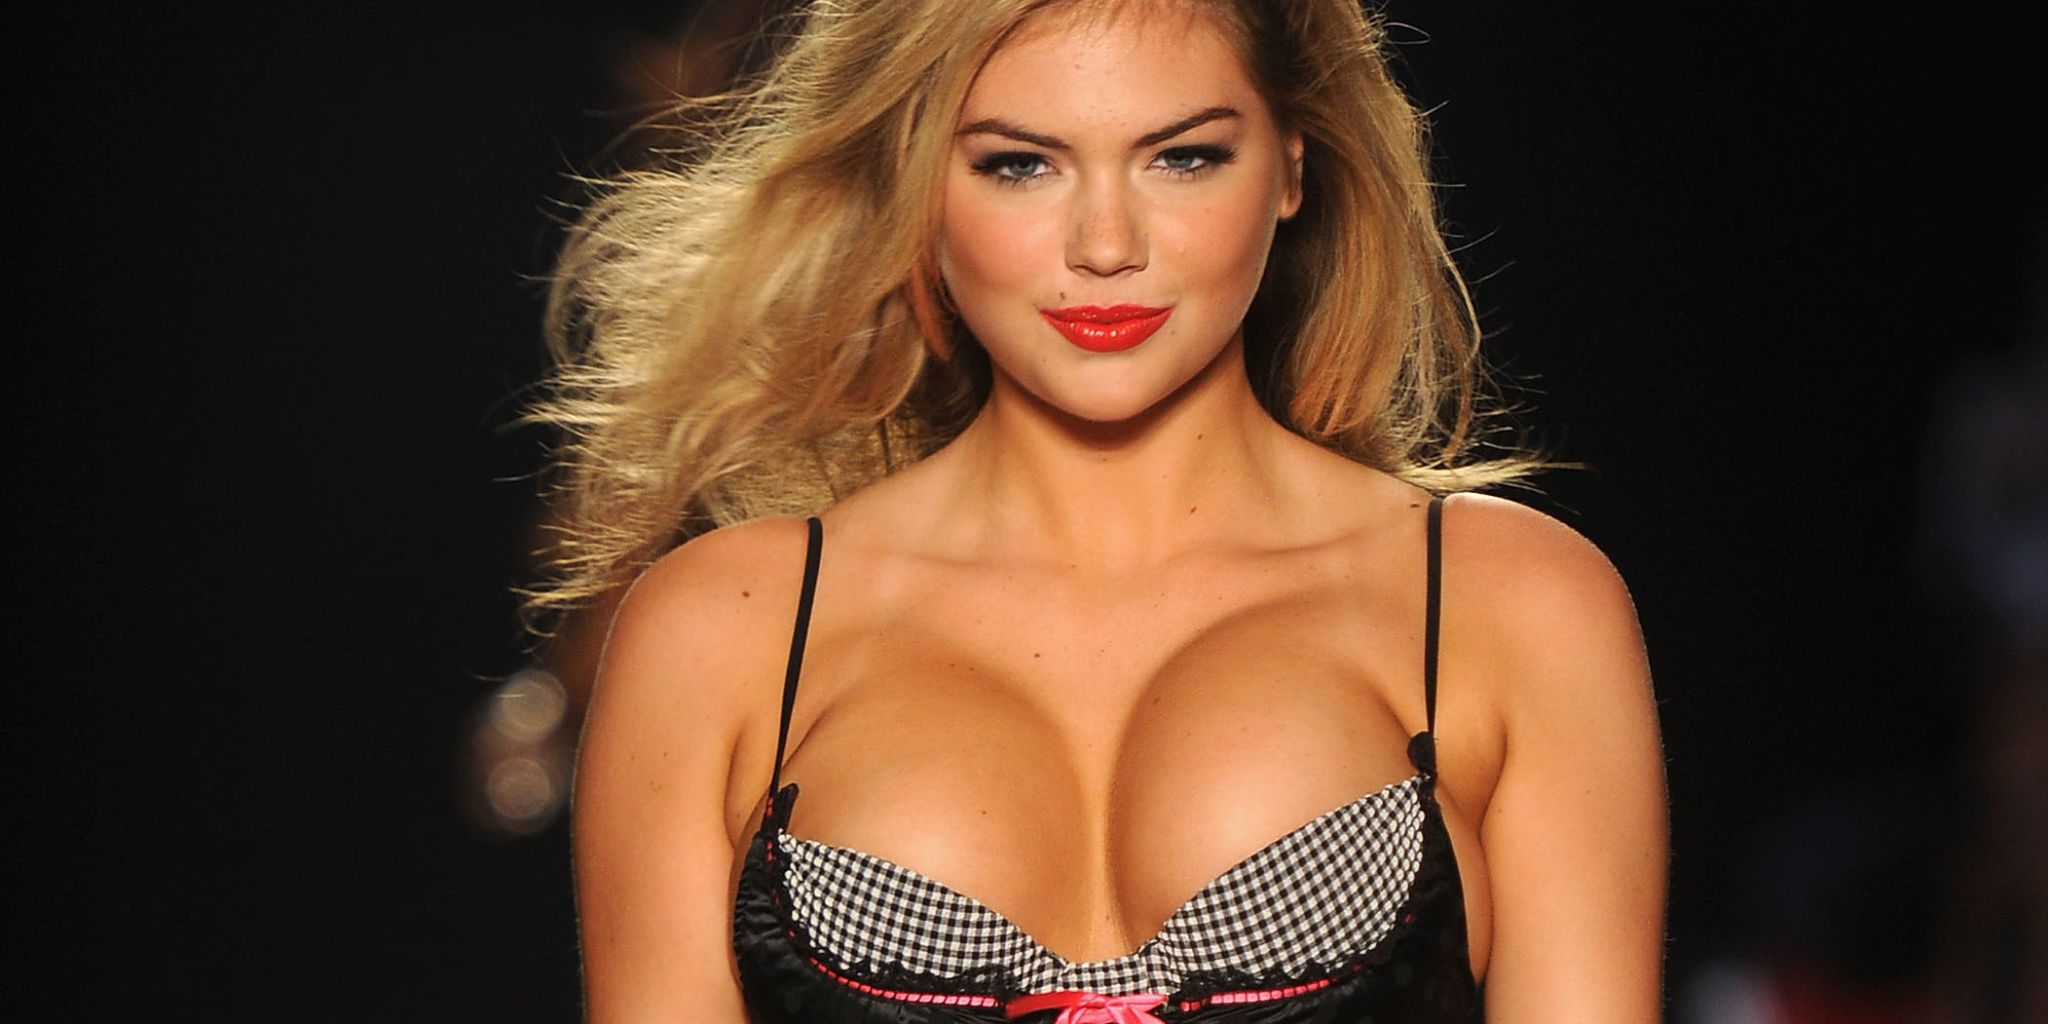 Kate upton had breast implants